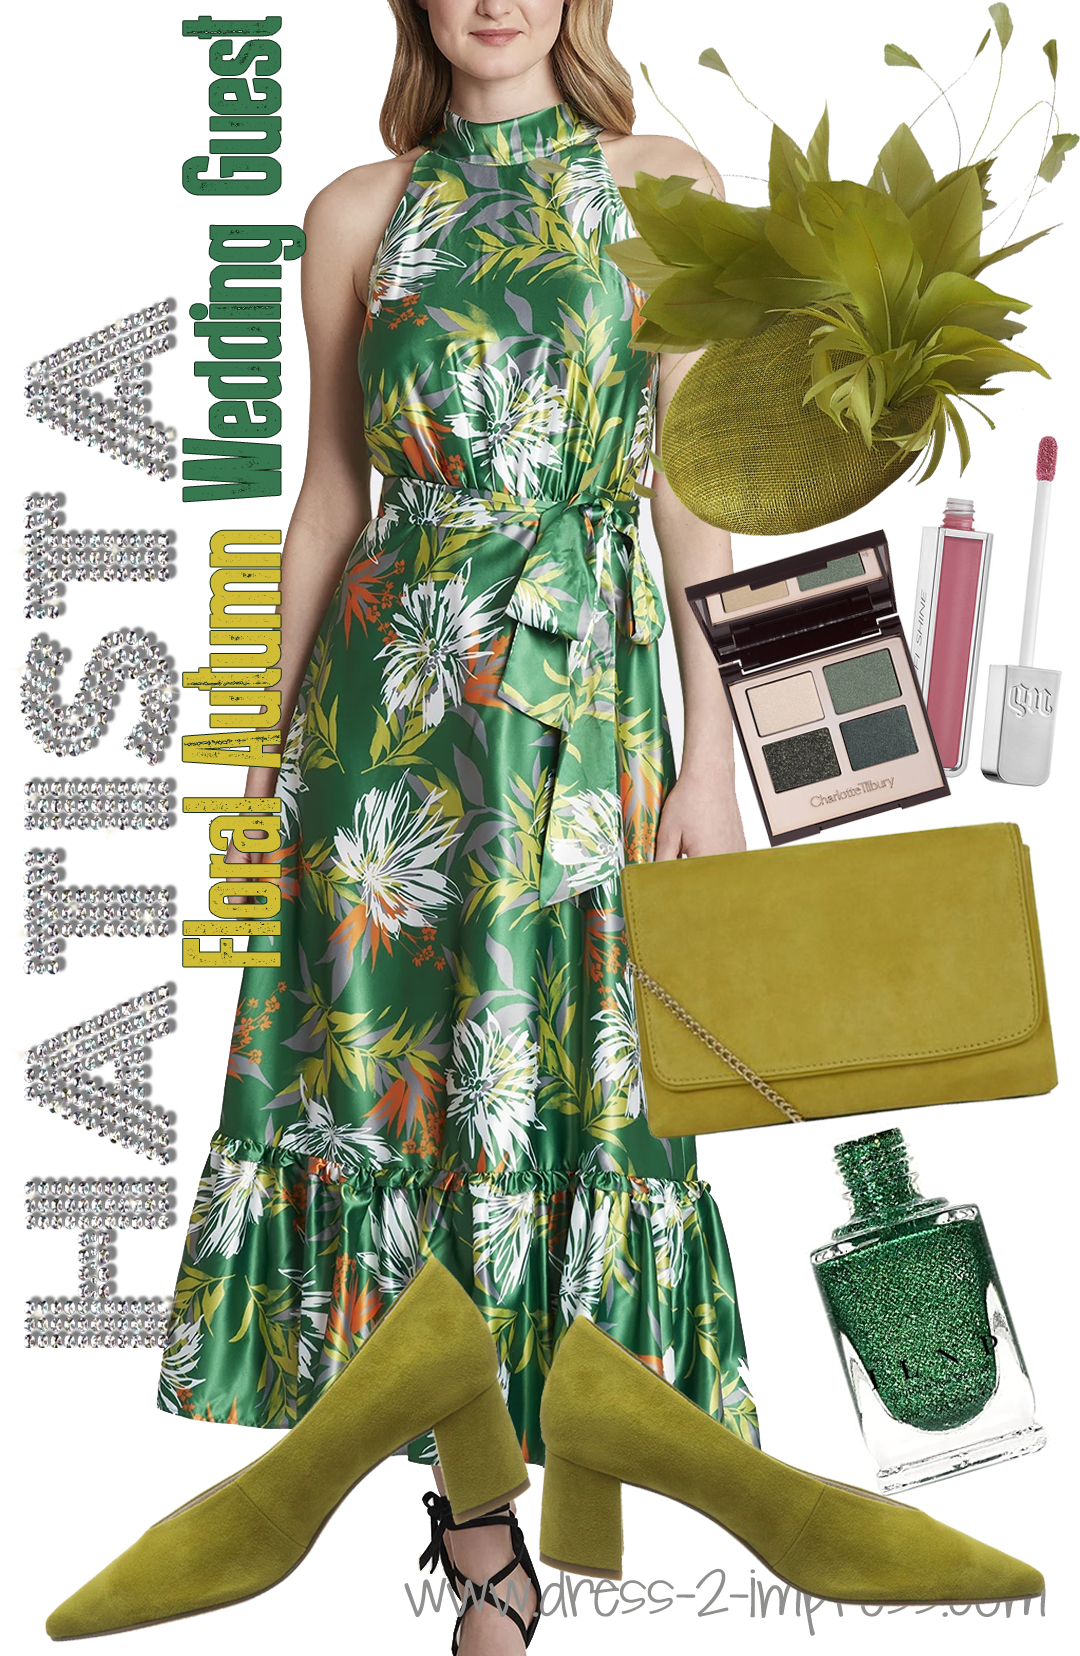 How to Wear Green. Outfit ideas for Autumn Wedding Guests. What to wear for Royal Ascot 2020. Outfit ideas for an Autumn Wedding 2019. Autumn Mother of the Bride outfits 2019. What to wear to the Races. What to wear with a Green Dress. How to wear Green.